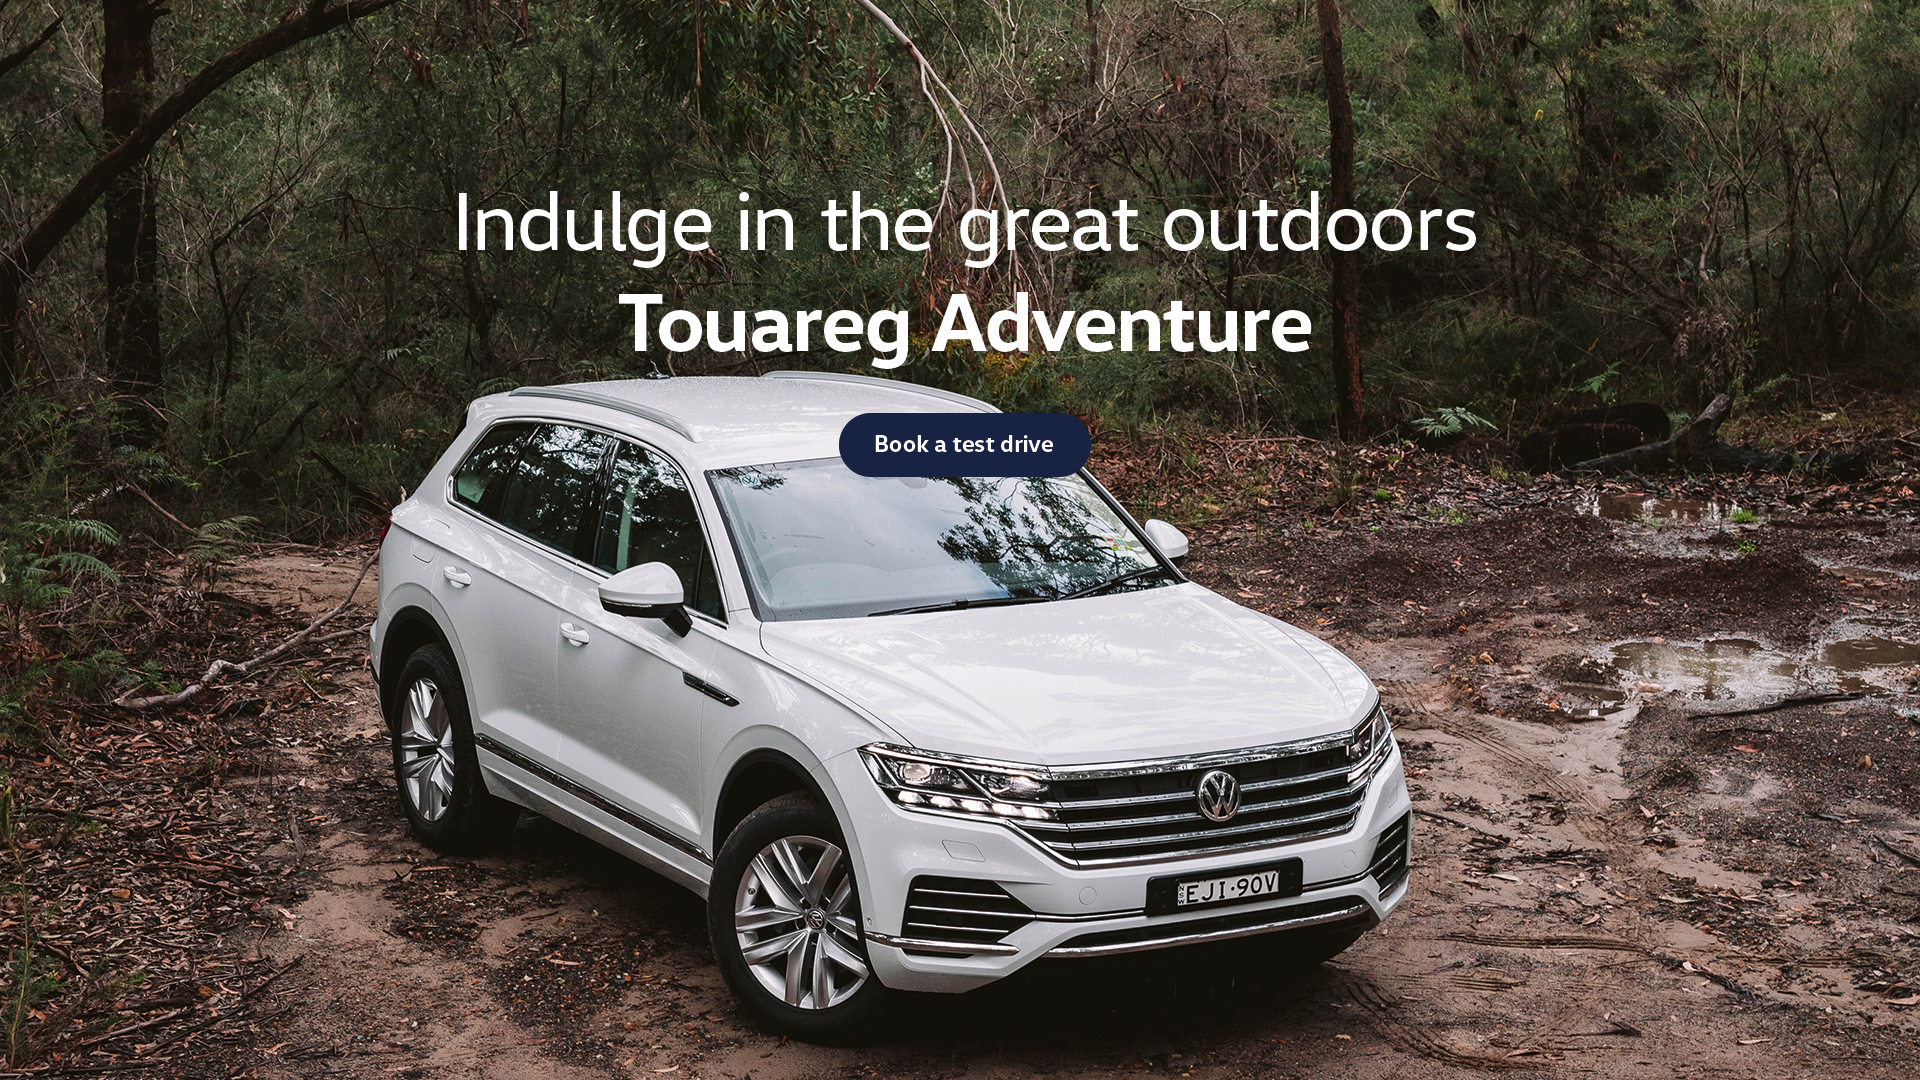 Volkswagen Touareg Adventure. Indulge in the great outdoors. Test drive today at Shepparton Volkswagen.